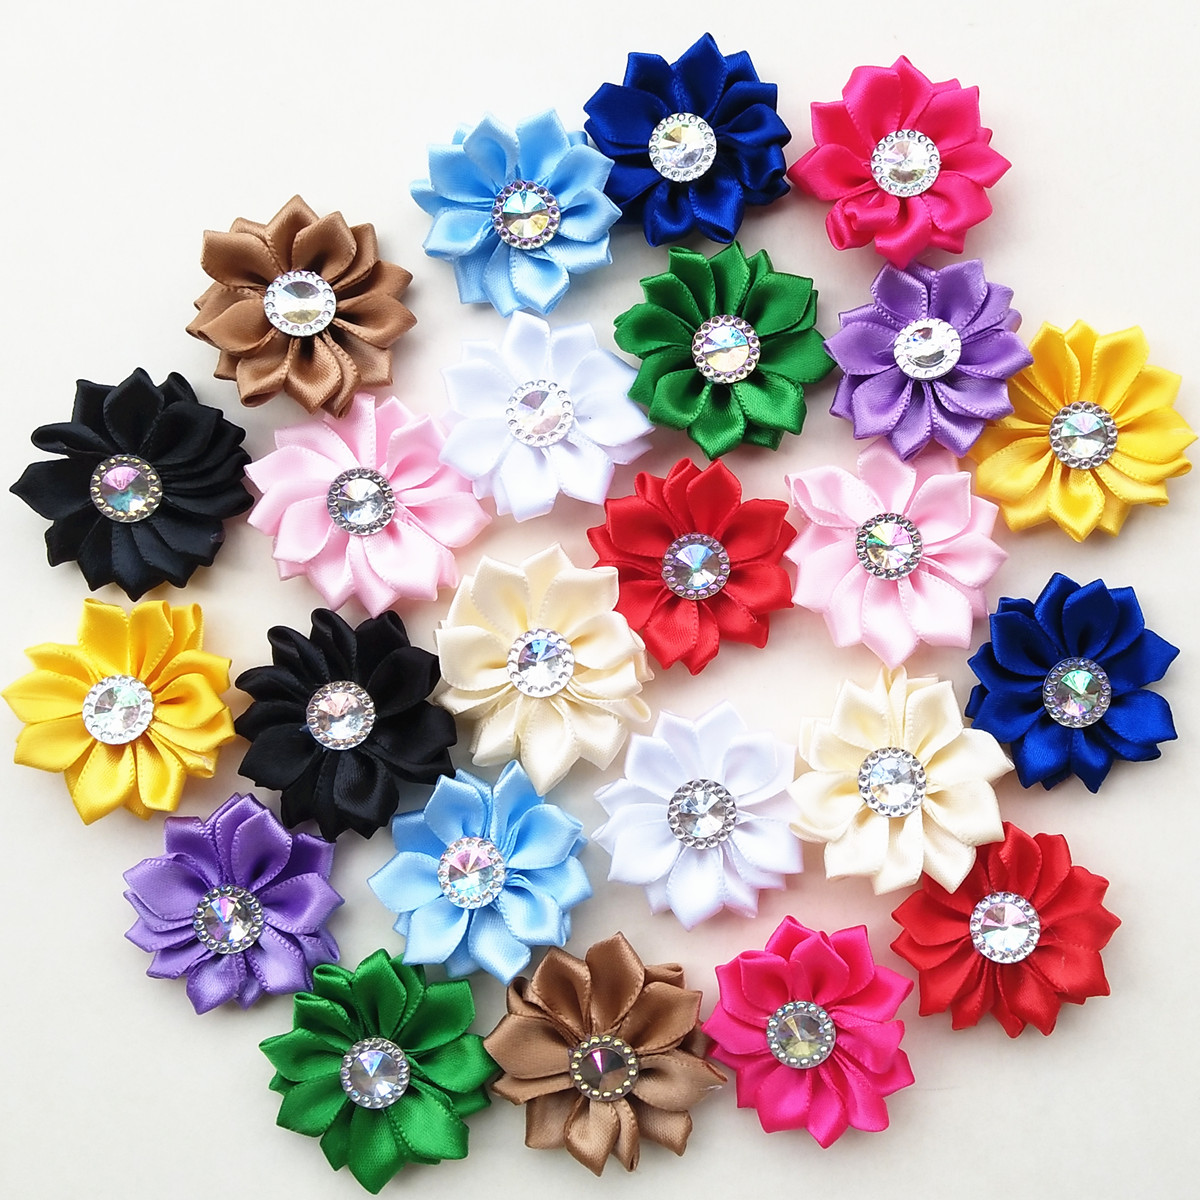 Multi Colors Shiny Satin Ribbon Flower Clothes Sewing Diy Craft